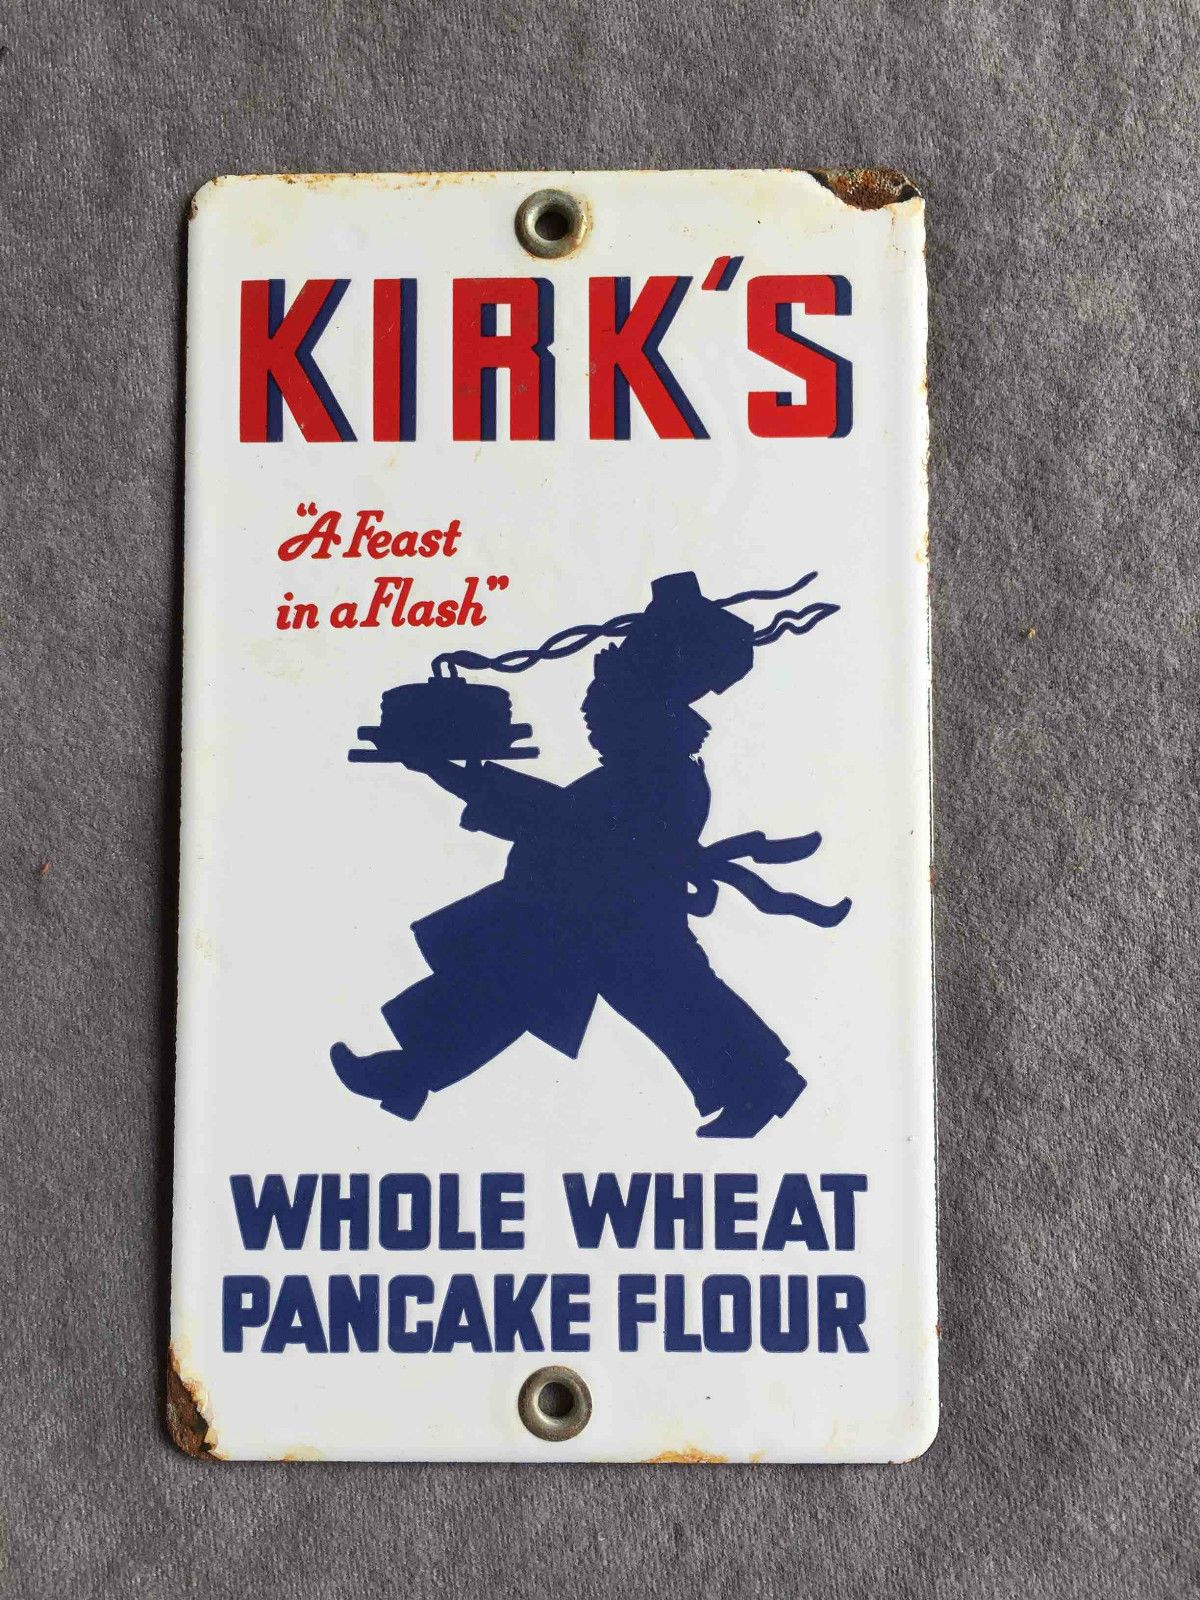 Vintage wooden music stand book stand by vintagearcheology on etsy - Vintage Kirk S Whole Wheat Pancake Flour Porcelain Advertising Door Push Sign